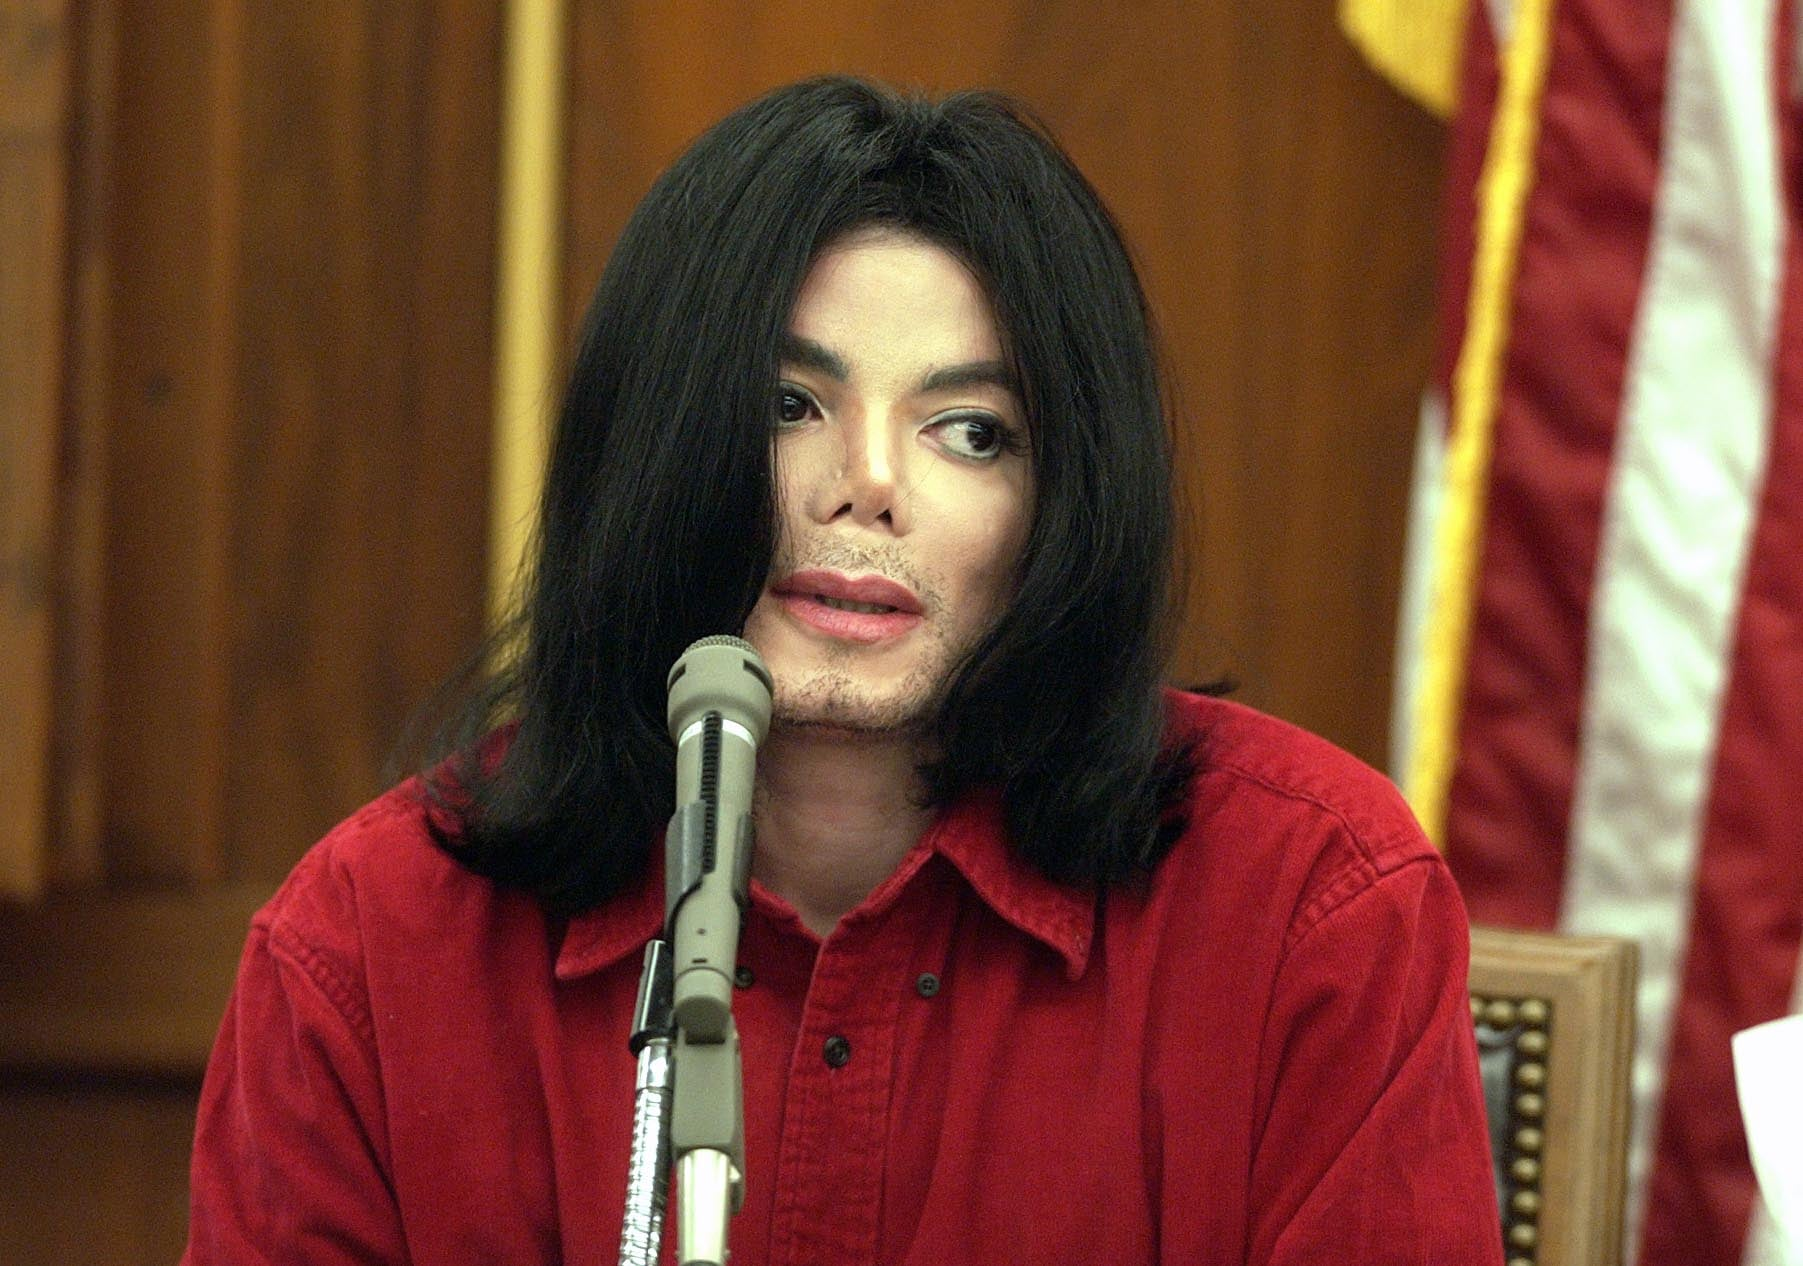 SANTA MARIA, CA - NOVEMBER 14:  Musician Michael Jackson testifies during his civil trial in Santa Maria Superior Court November 14, 2002 in Santa Maria, California. The artist is being sued for $21 million by his longtime promoter for backing out of two concerts.   (Photo by /Getty Images)